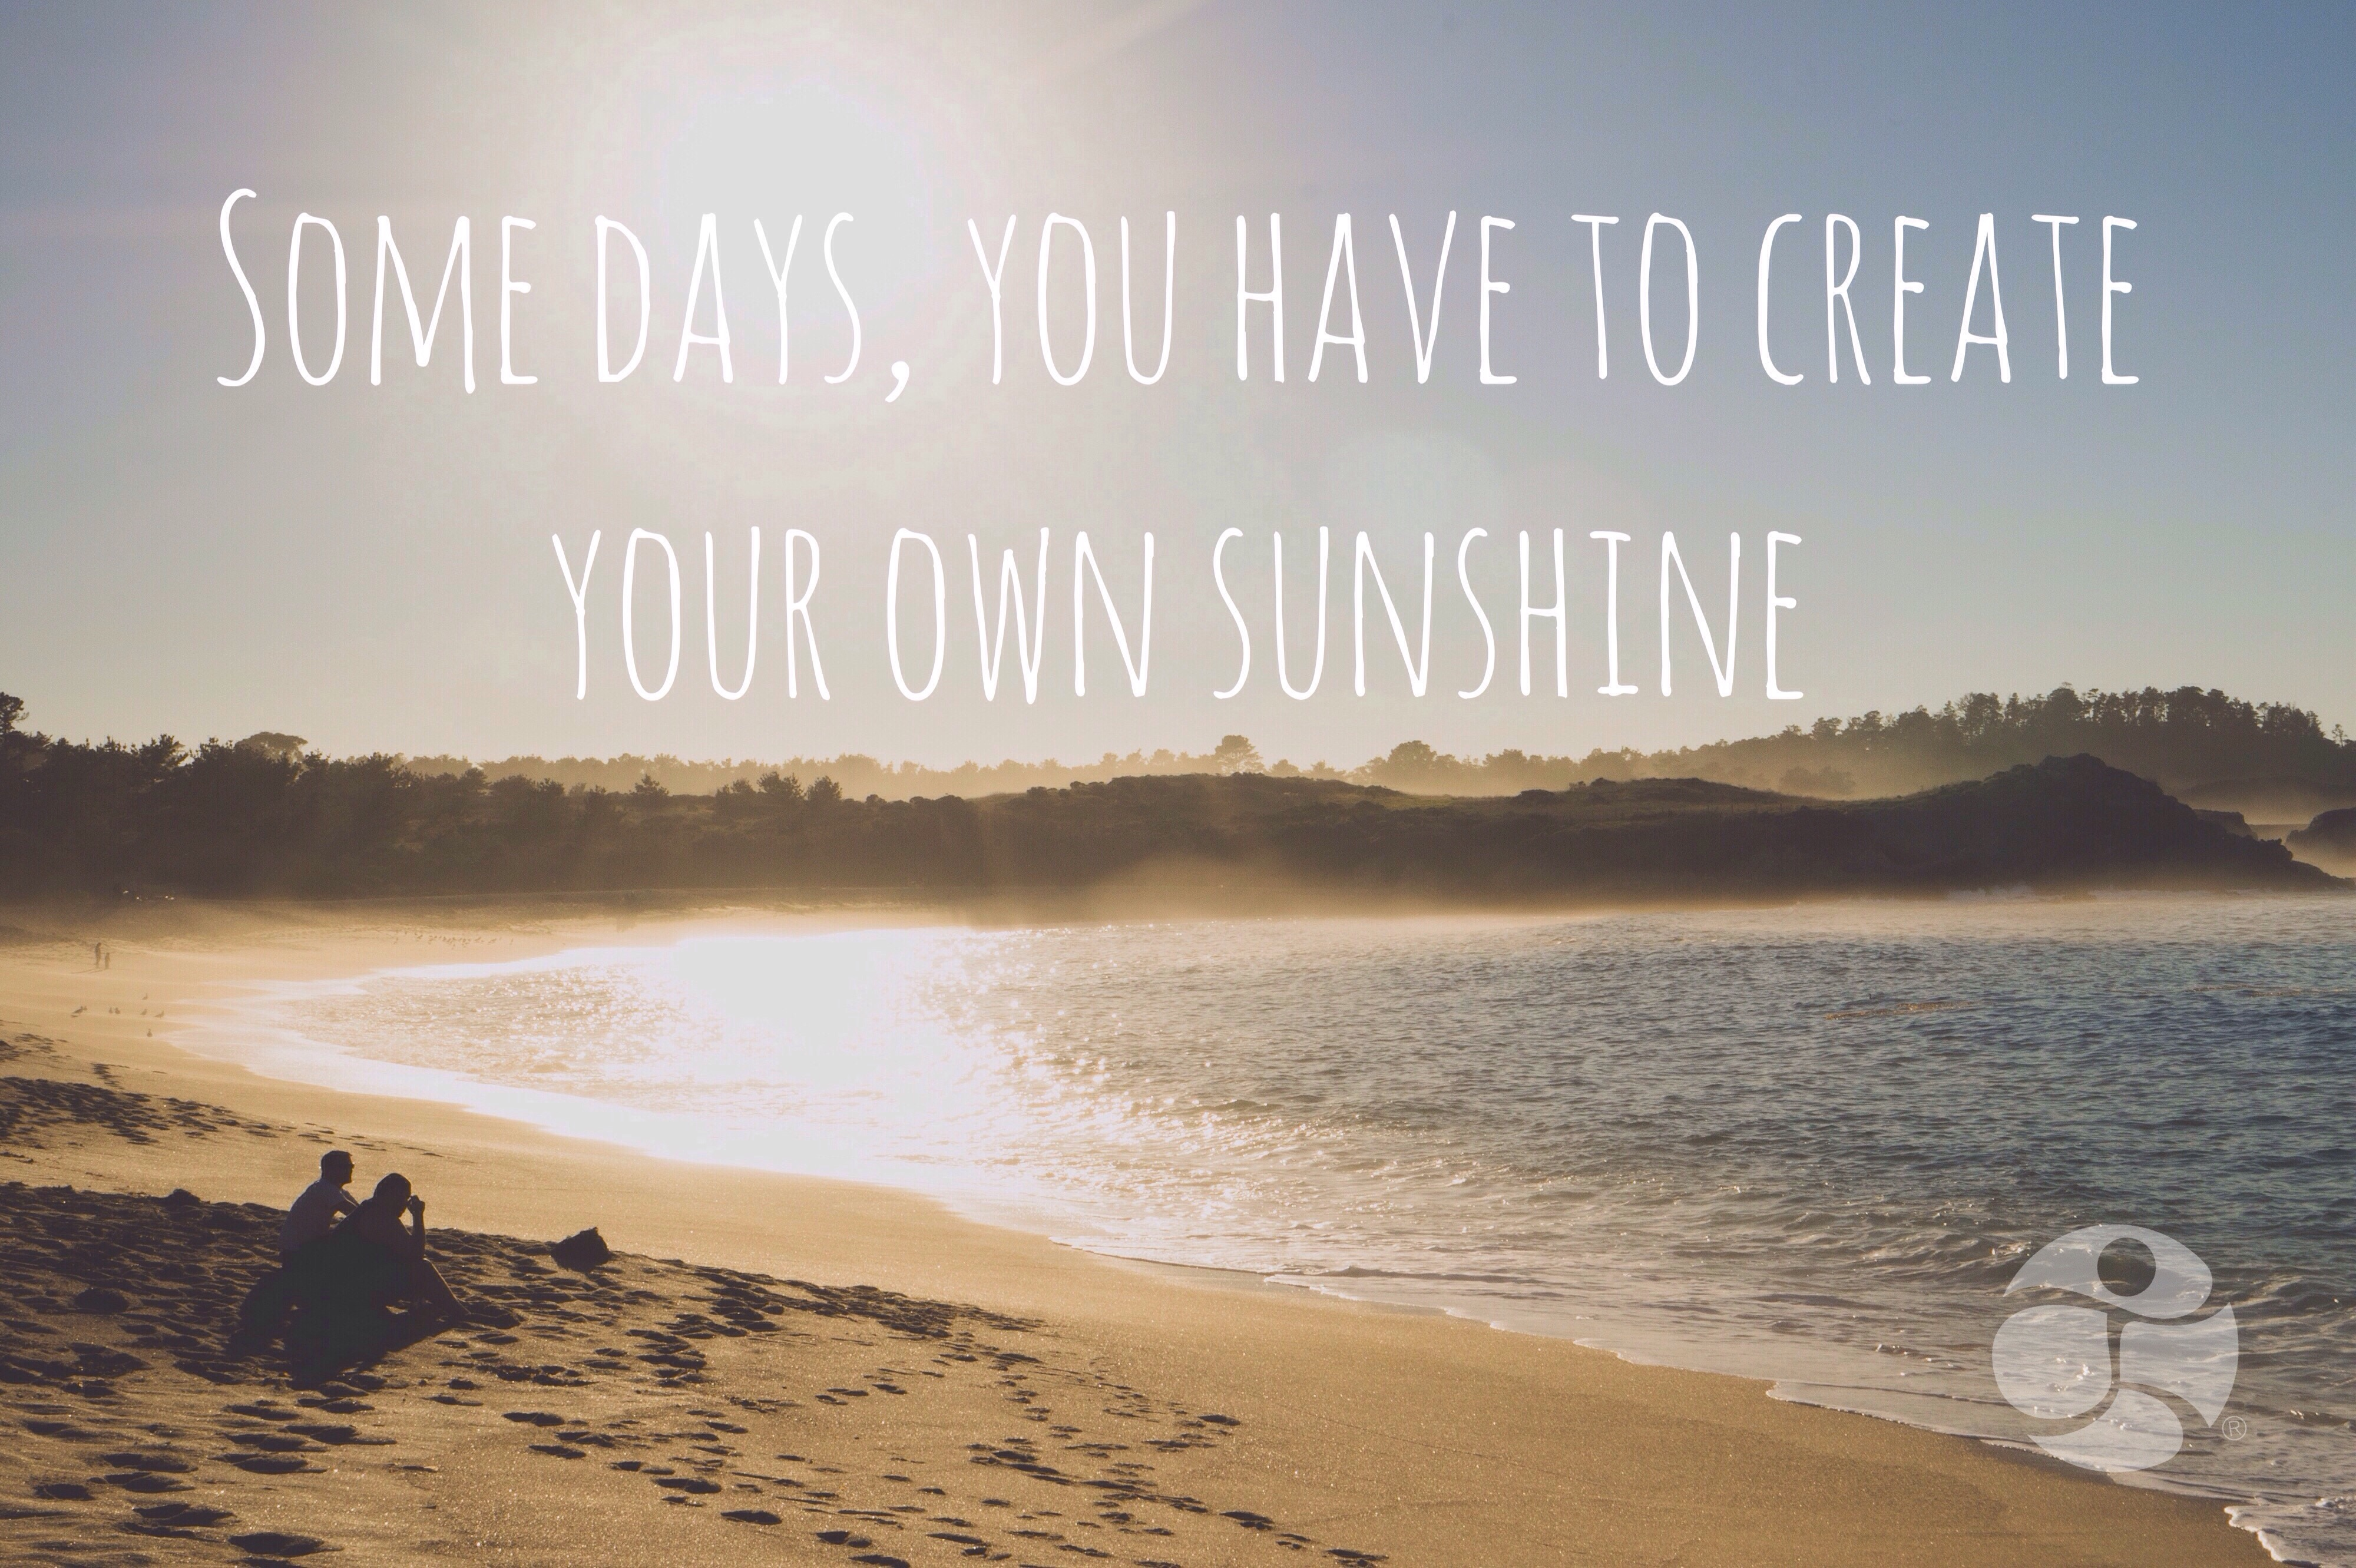 Some-days-you-have-to-create-your-own-sunshine